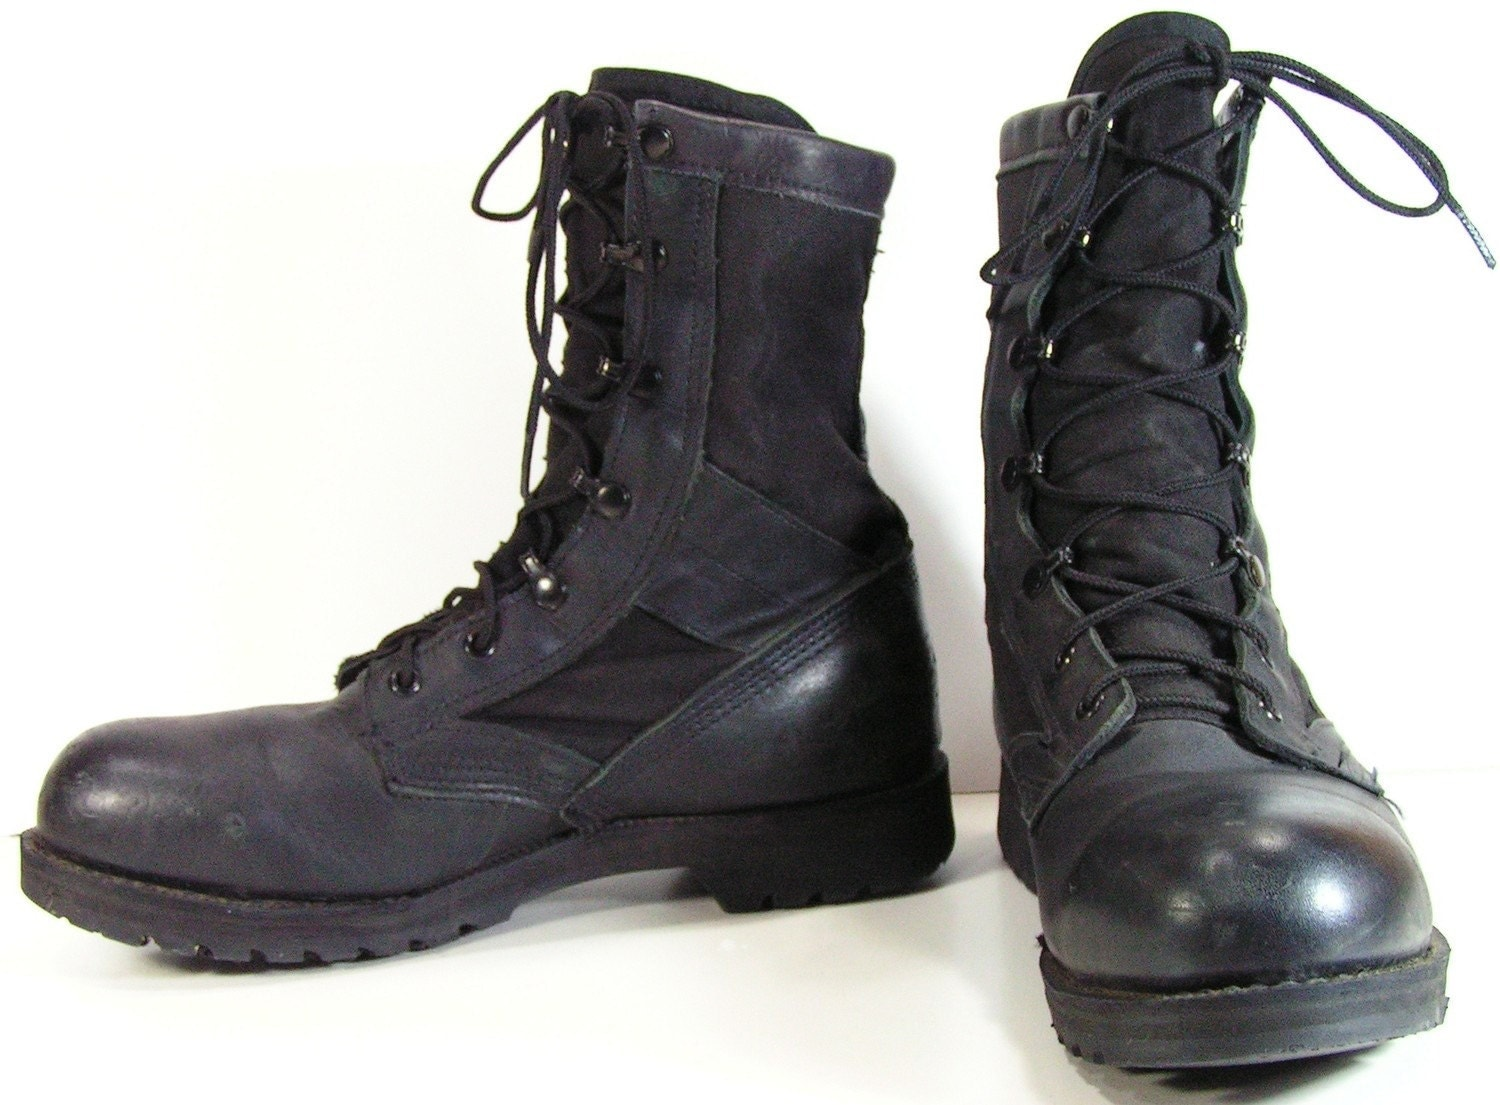 combat boots mens 9 d black steel toe work grunge